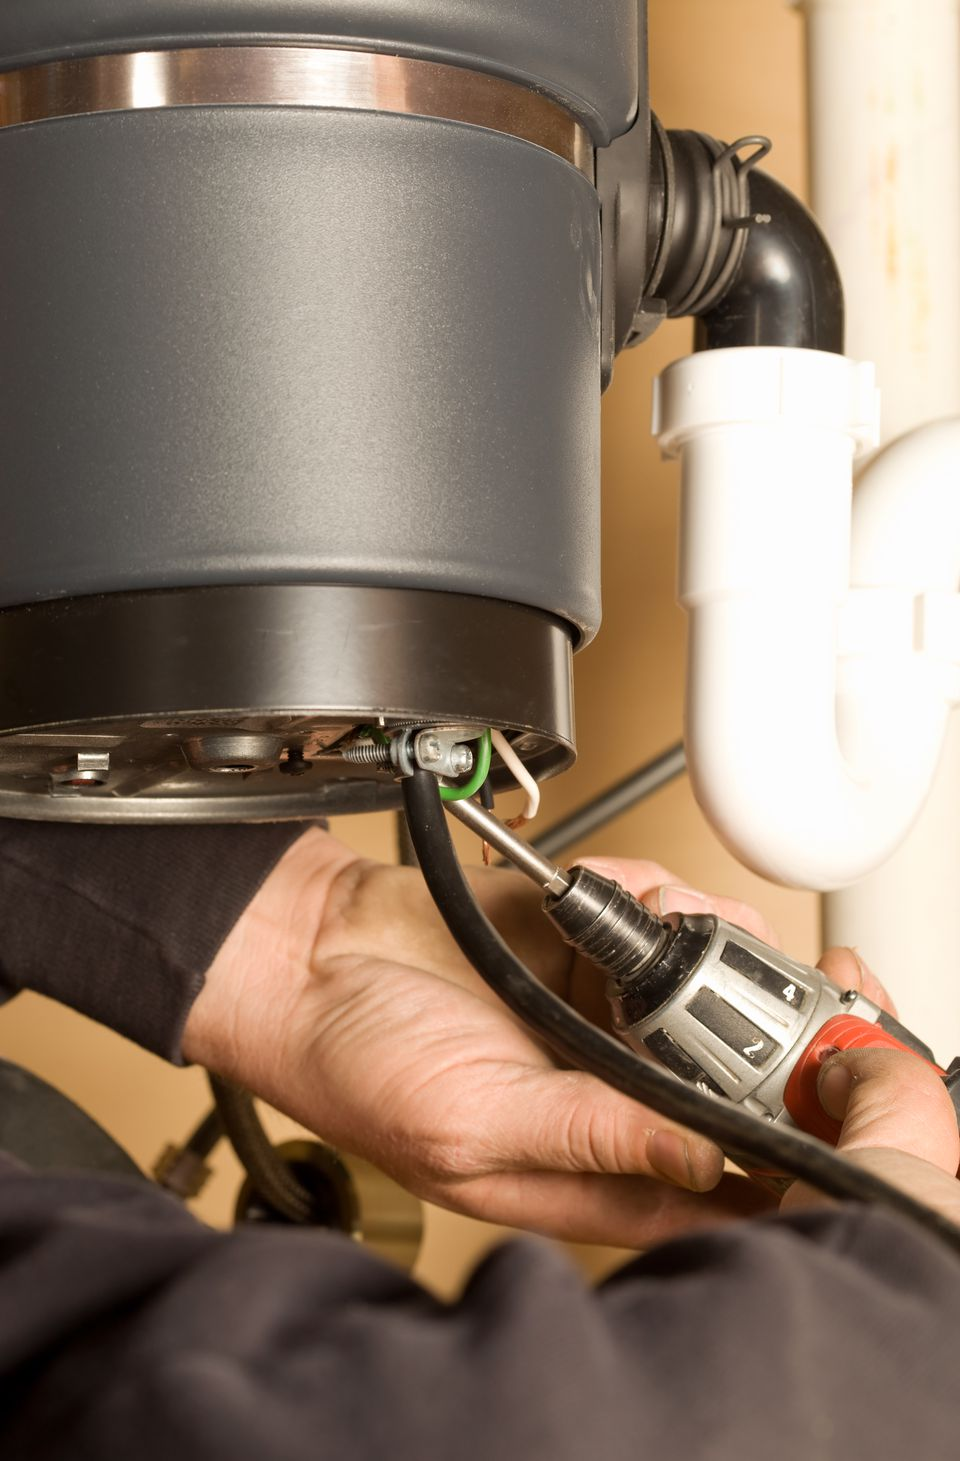 Electrician Wiring a New Kitchen Garbage Disposer